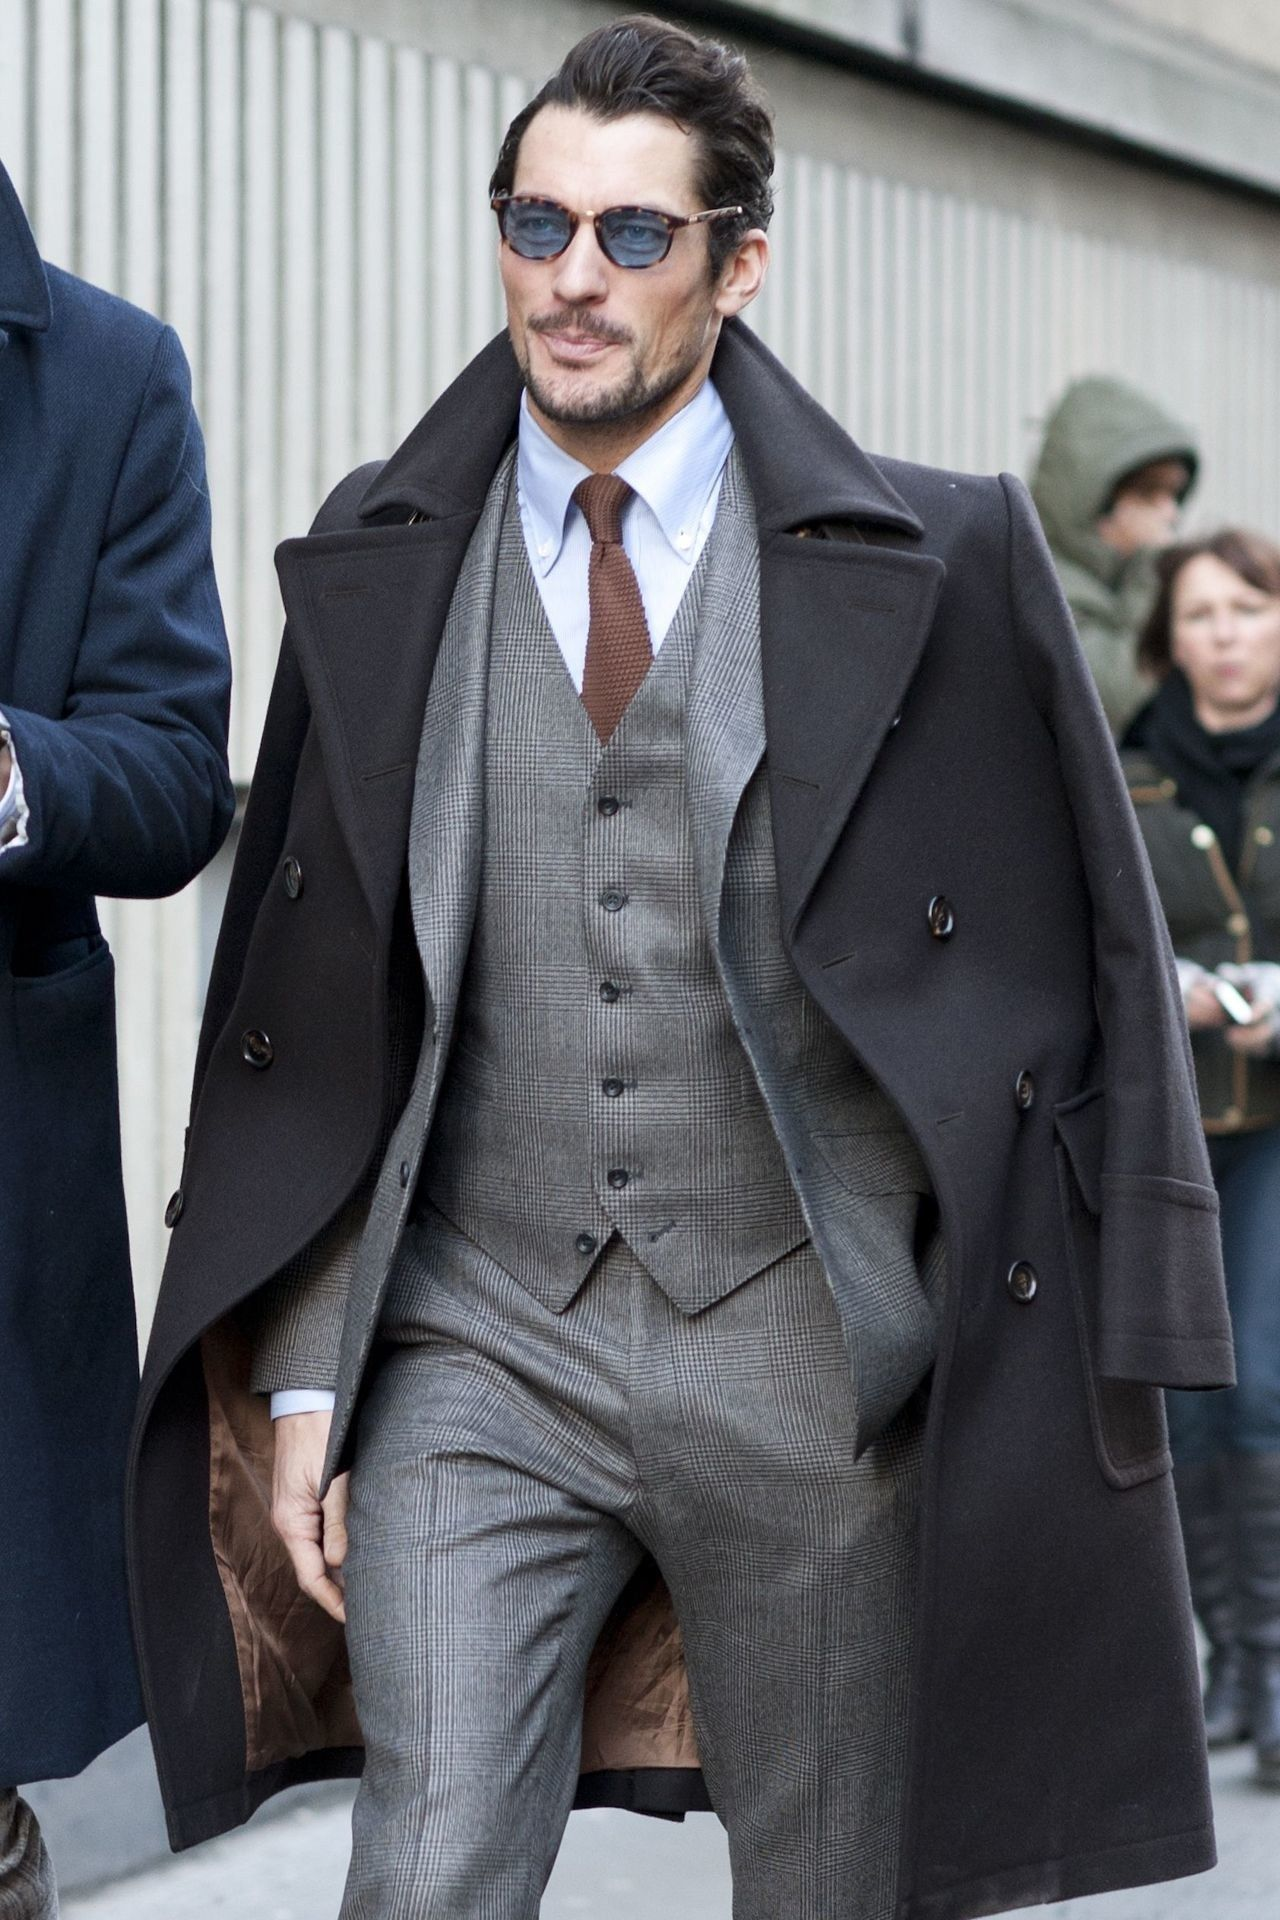 Every time David Gandy demonstrated supermodel style